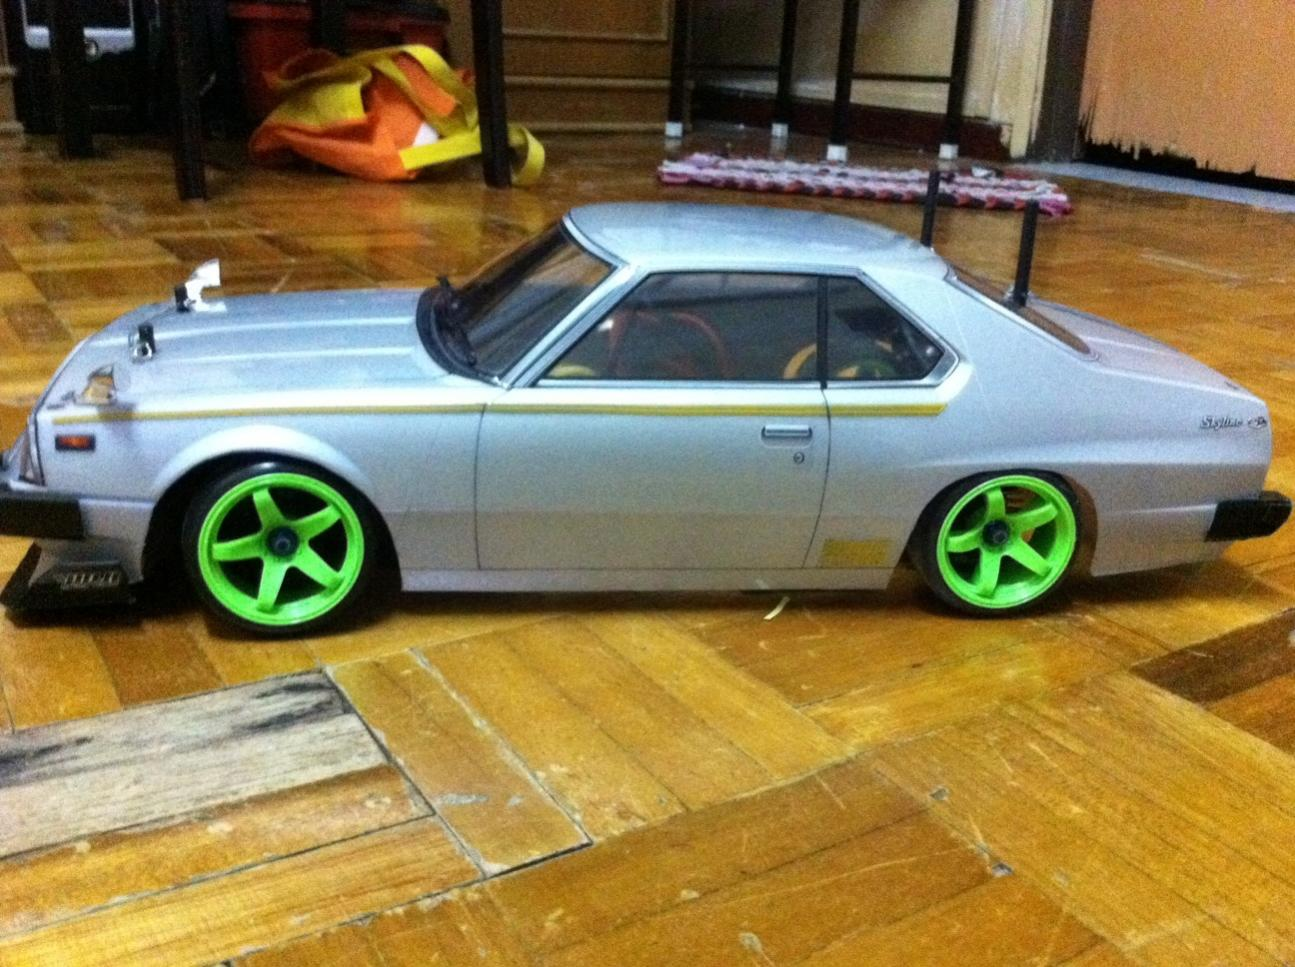 wts 1 10 rc bodyshell for drift touring very cheap price r c tech forums. Black Bedroom Furniture Sets. Home Design Ideas